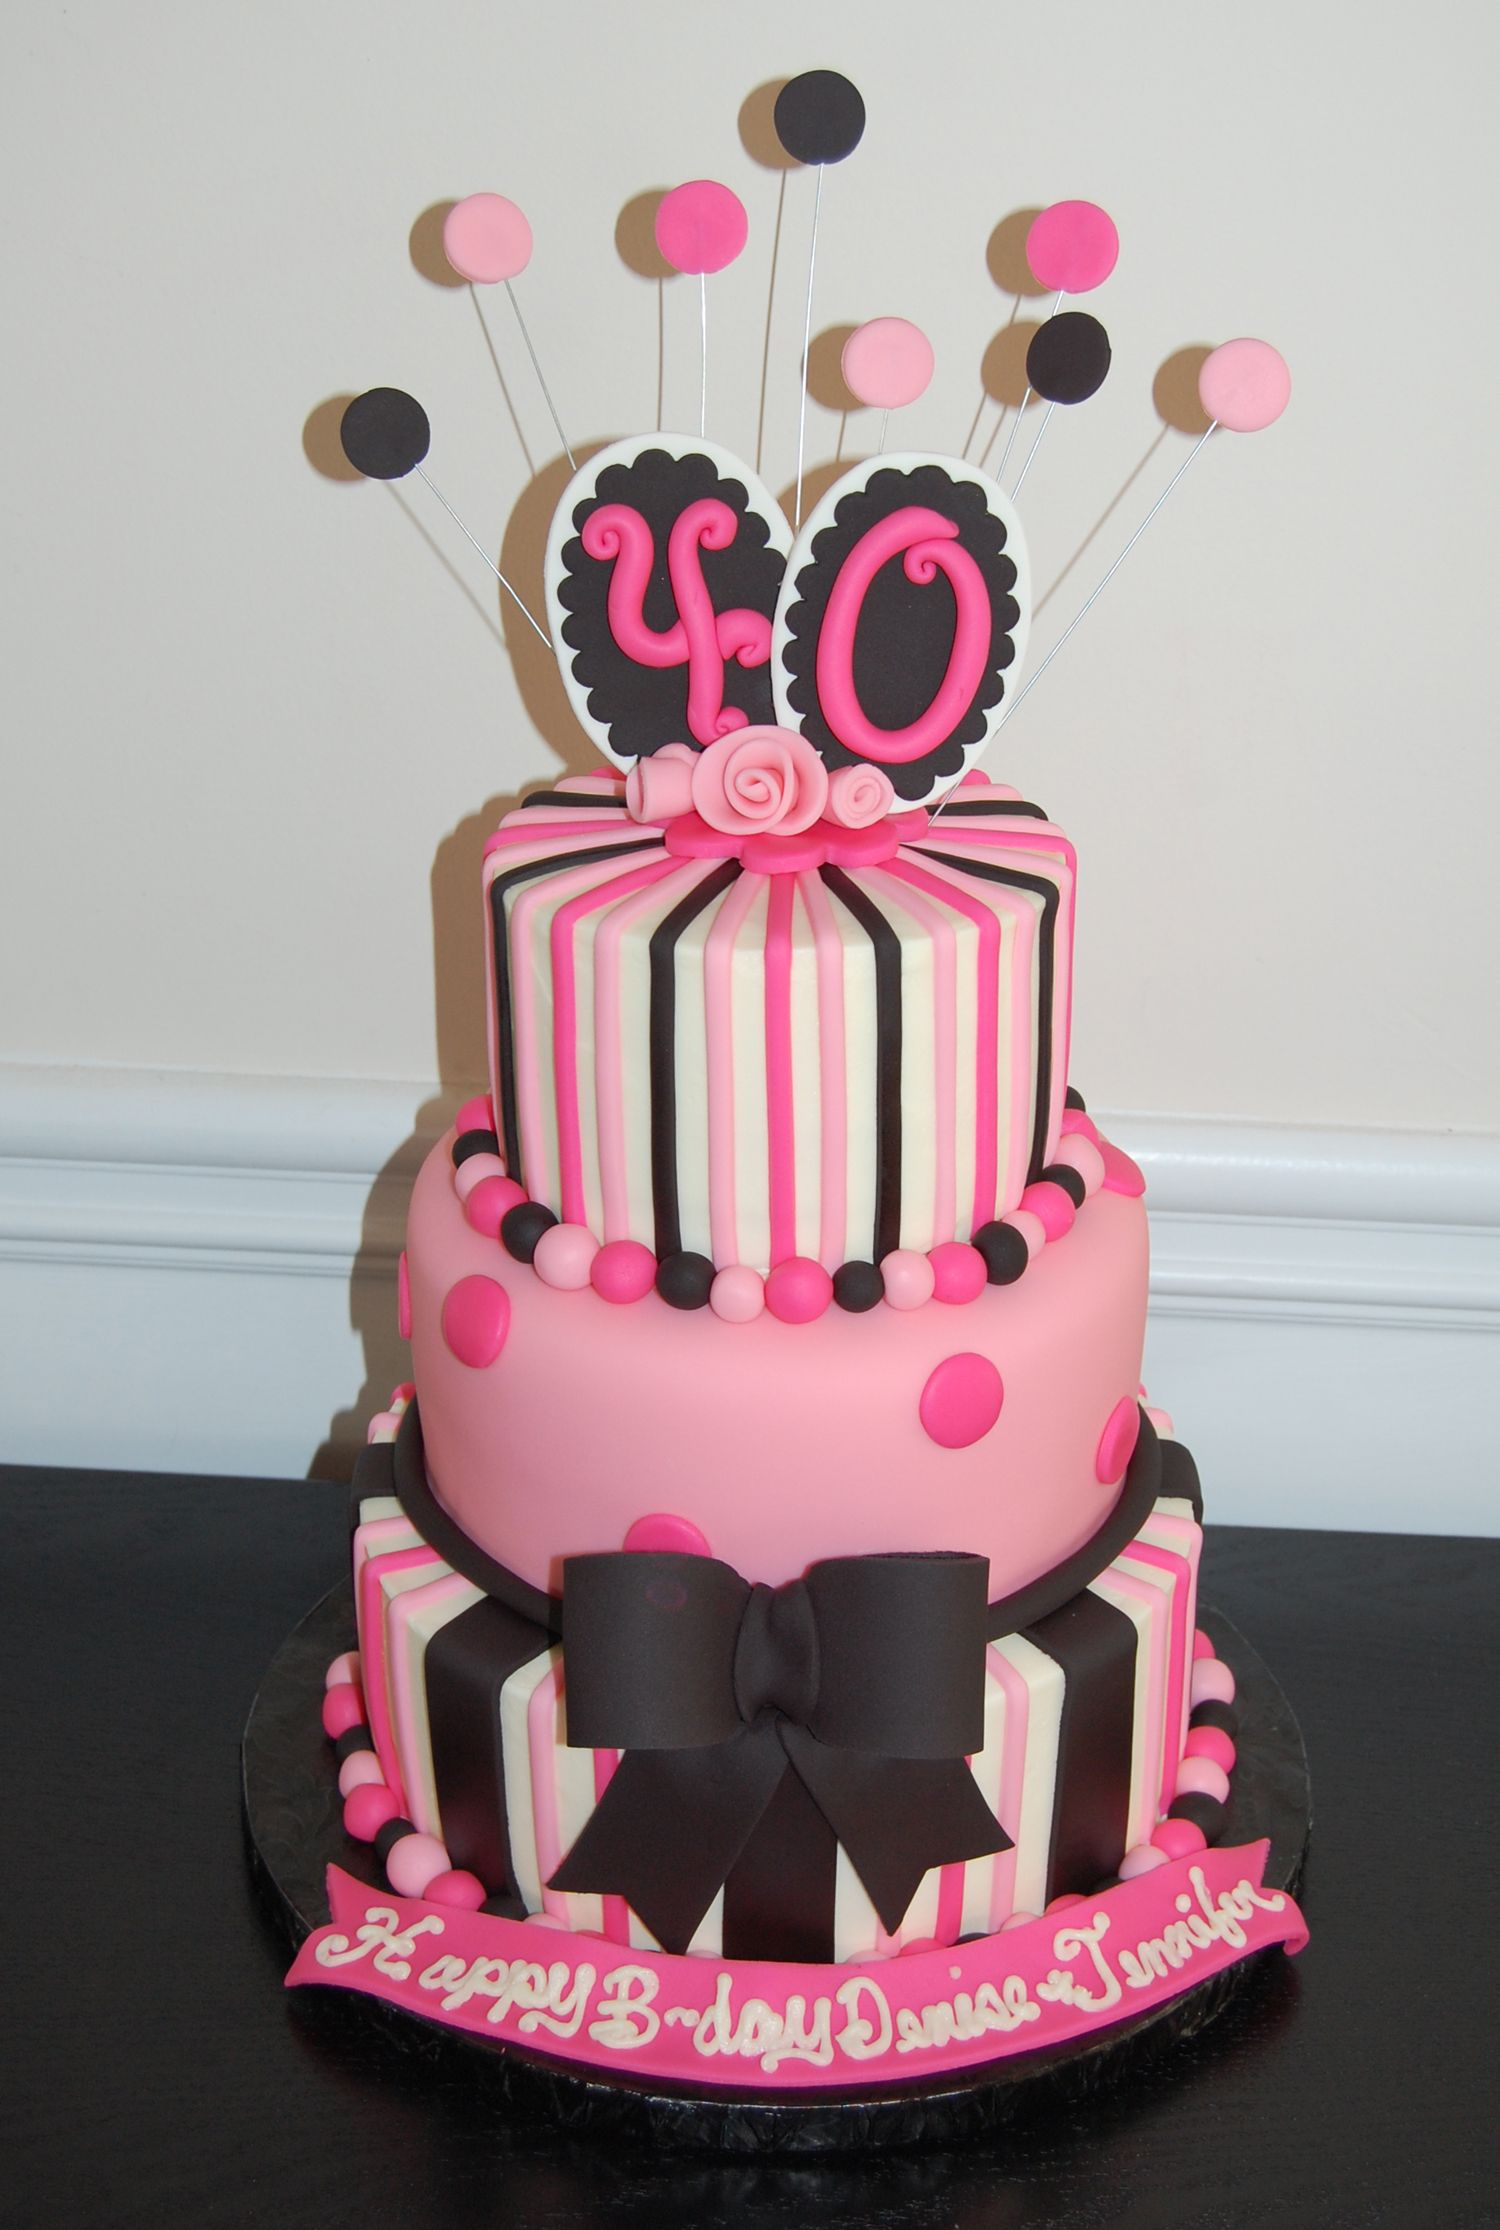 40th Birthday Cake Pink And Black 40th Birthday Cake In